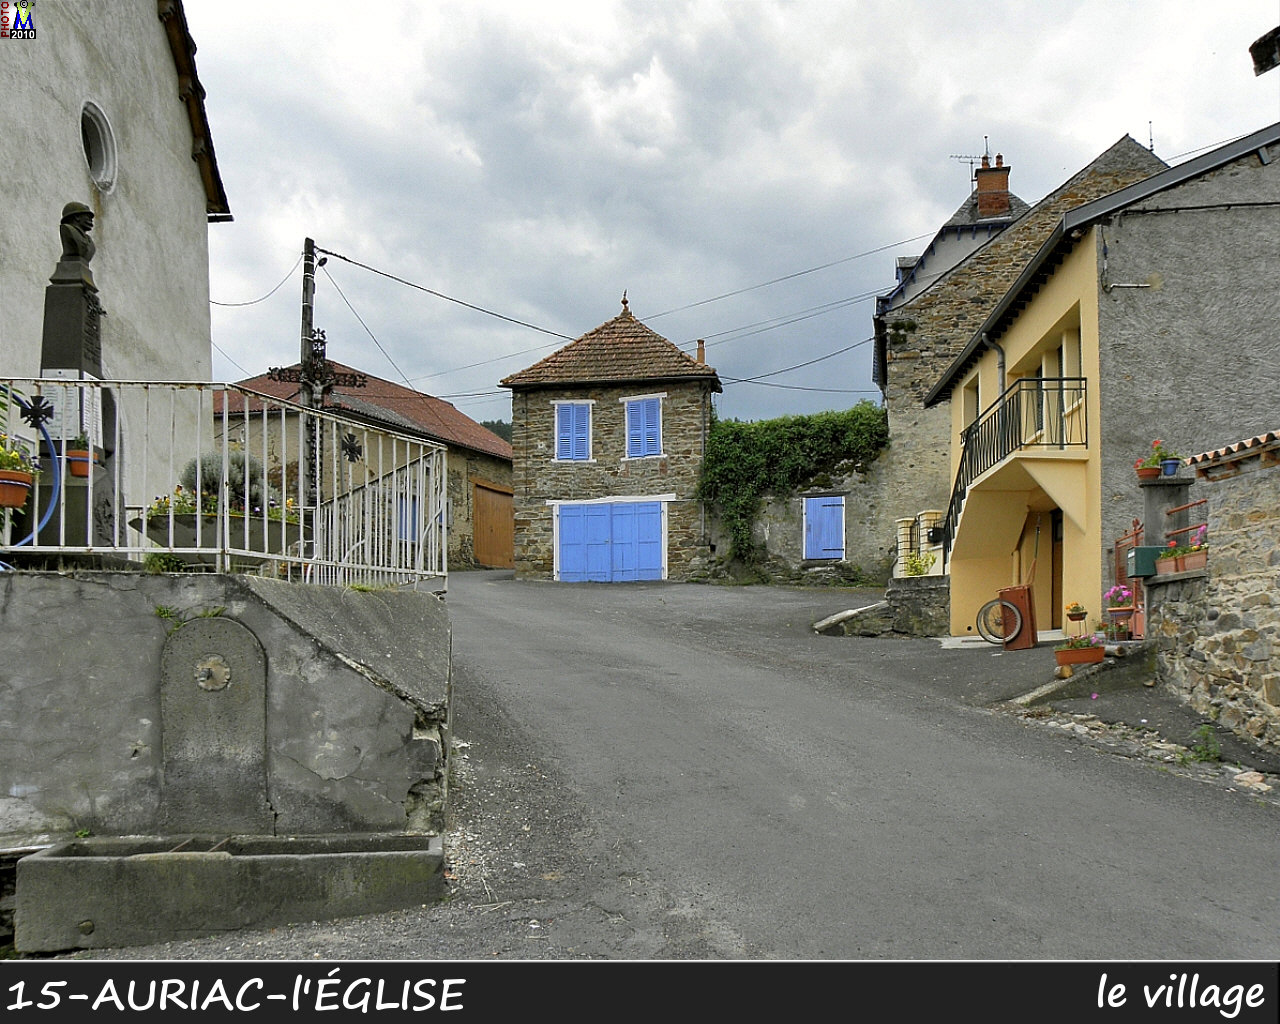 15AURIAC-EGLISE_village_100.jpg